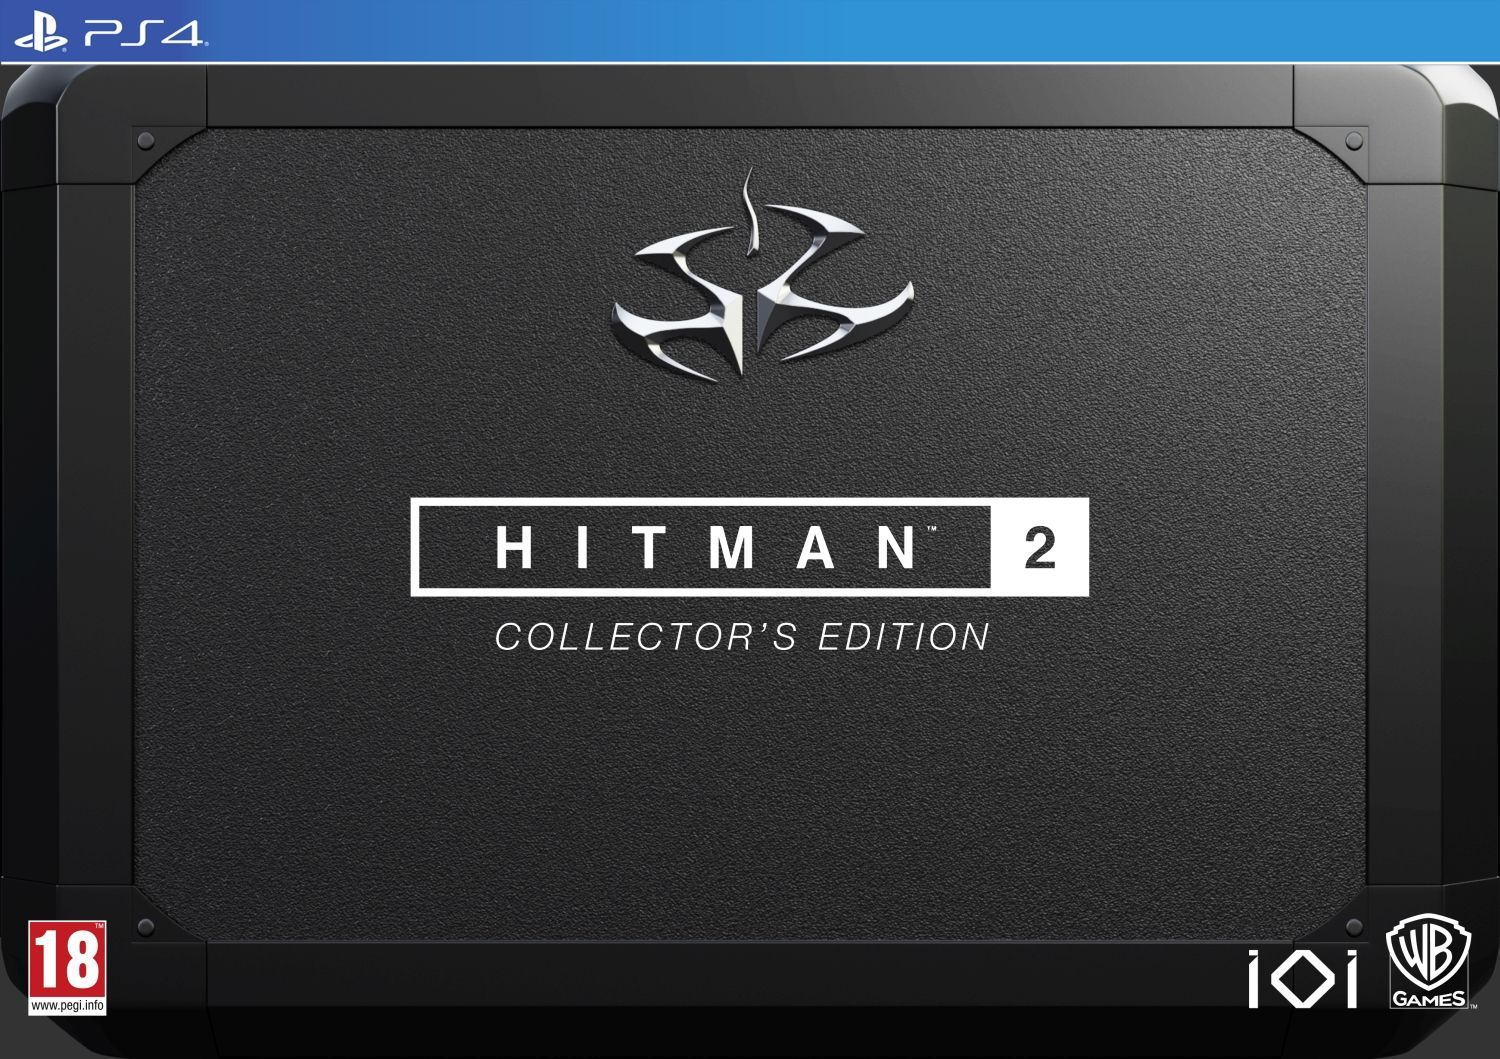 Hitman 2 Collector's Edition (PS4) - 6